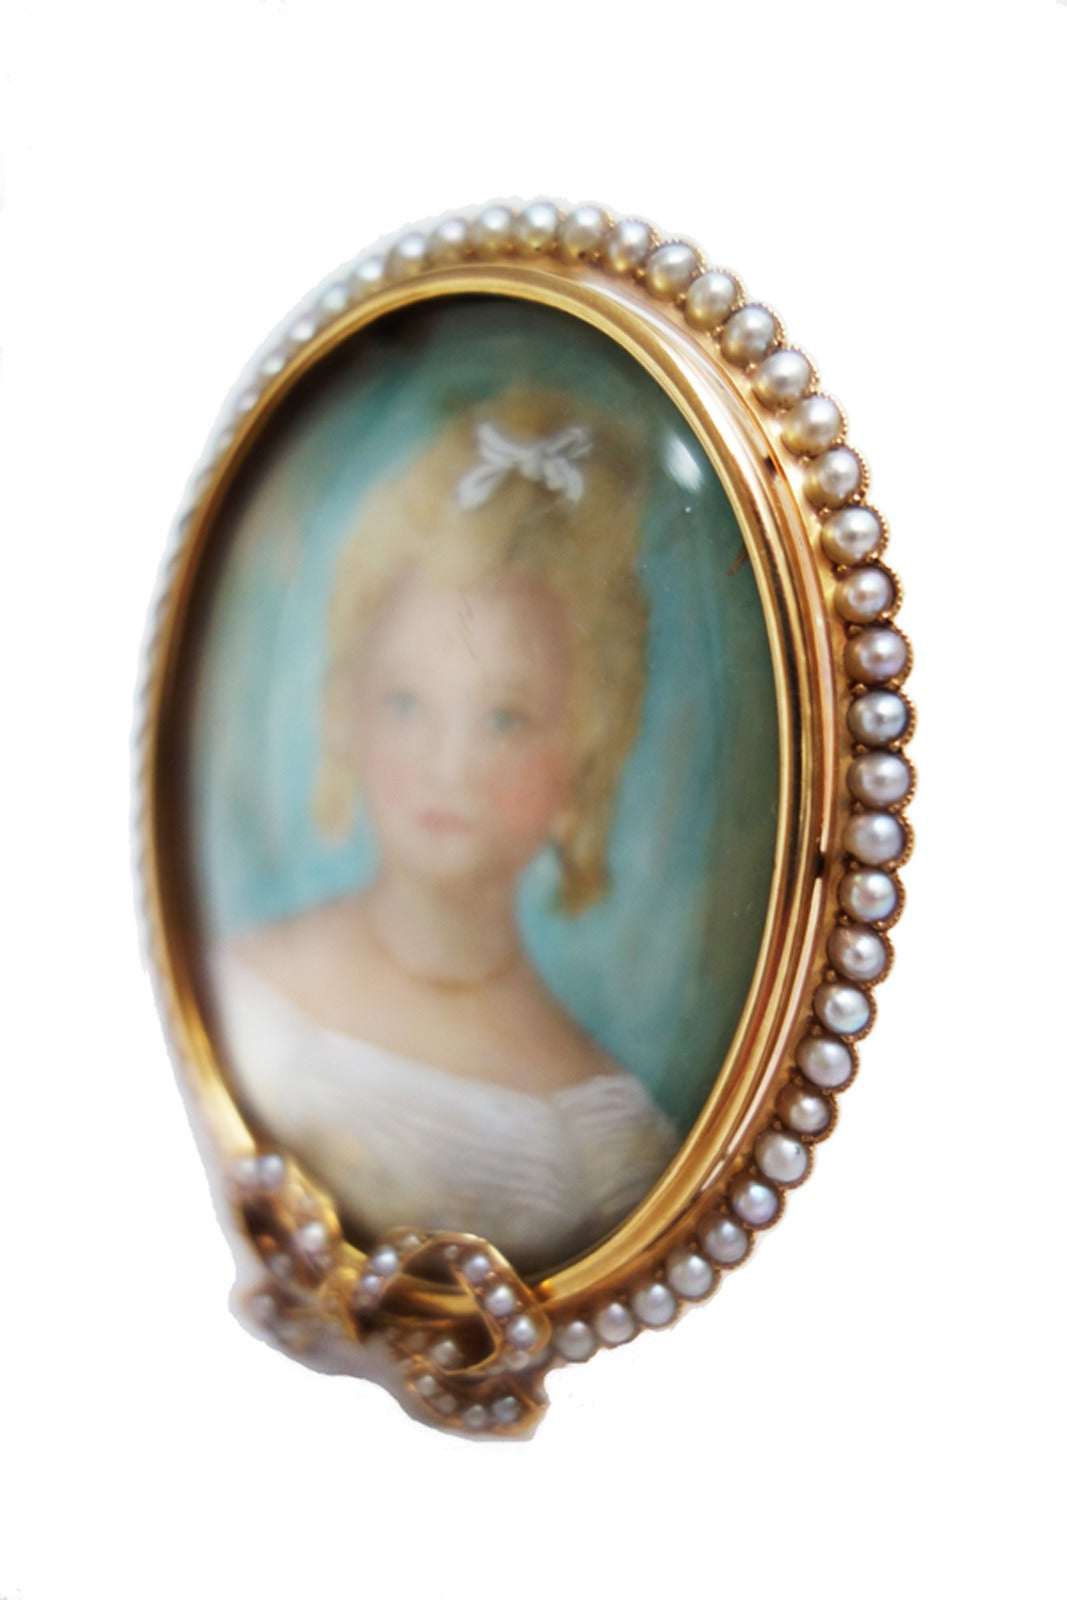 Antique 14K Rose Gold and Pearl Portrait Miniature Picture Frame. Watercolor portrait miniature of a lovely young woman. Circa 1890-1900 Executed in soft blue-greens, creams, whites and browns. Frame completely encircled by natural seed pearls.